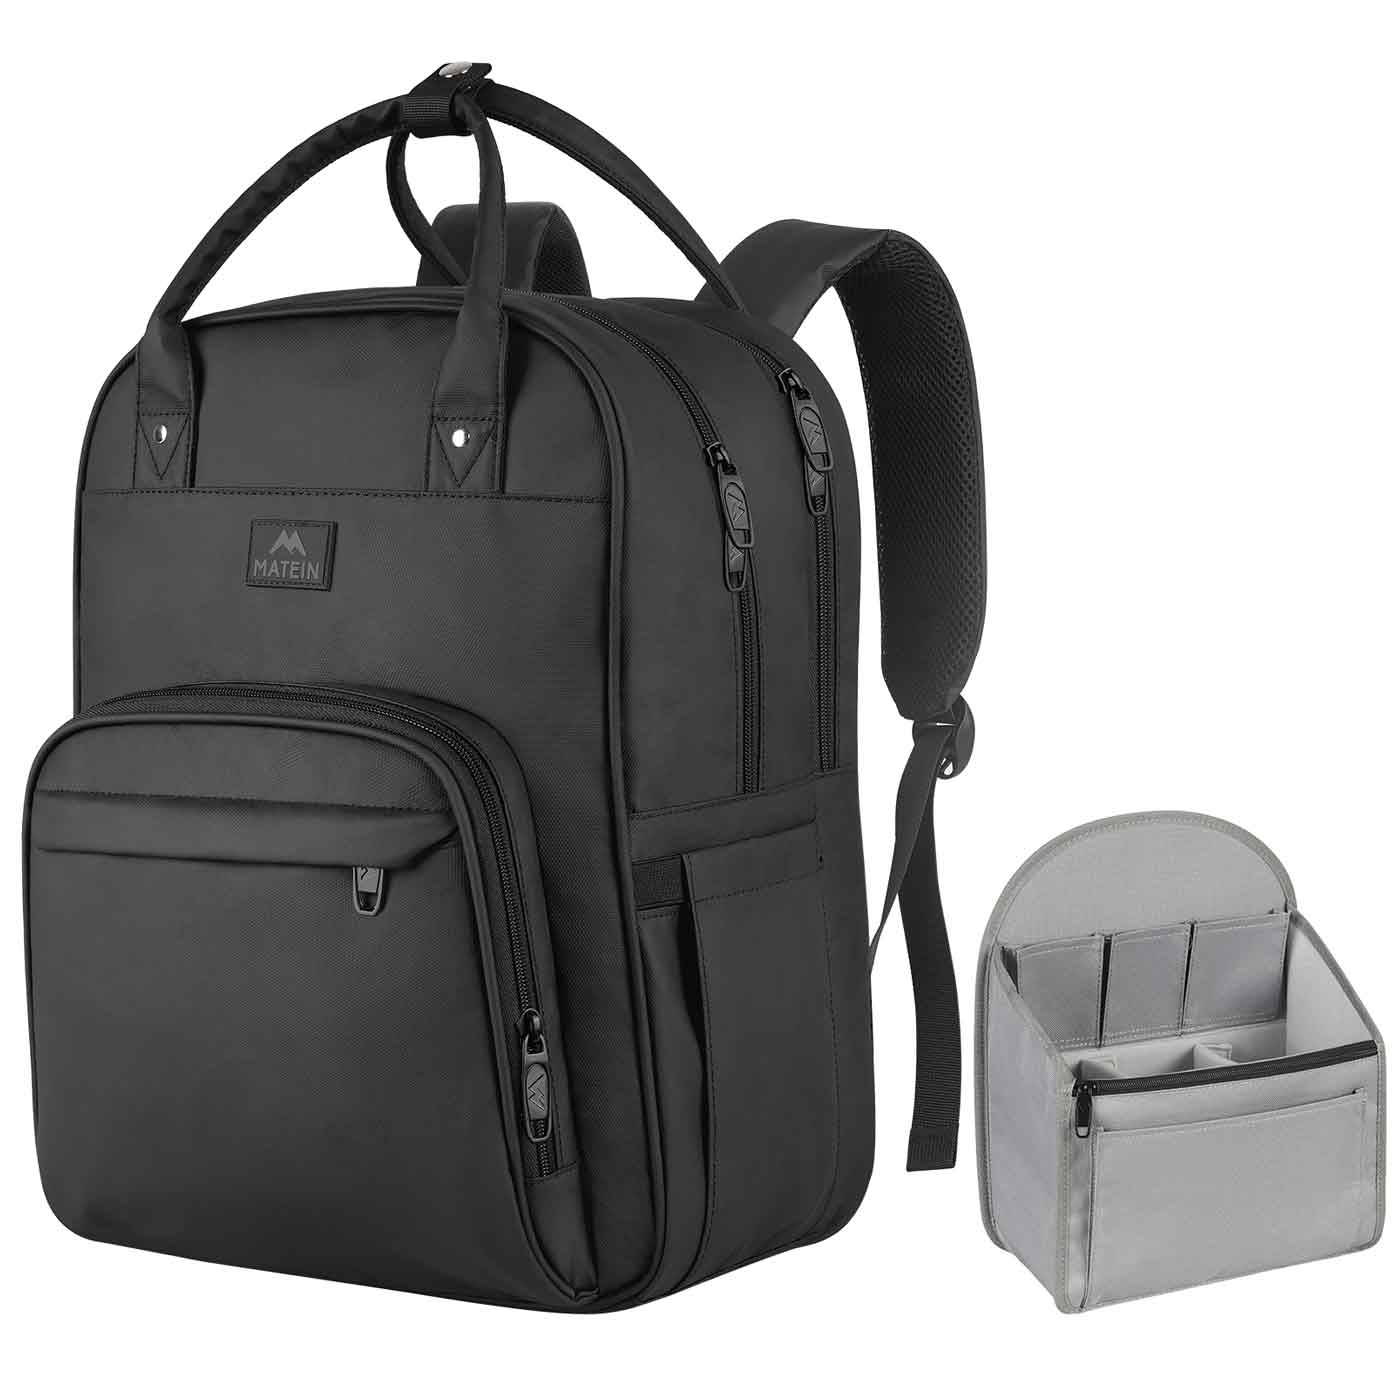 Matein KT Rolling Briefcase - travel laptop backpack